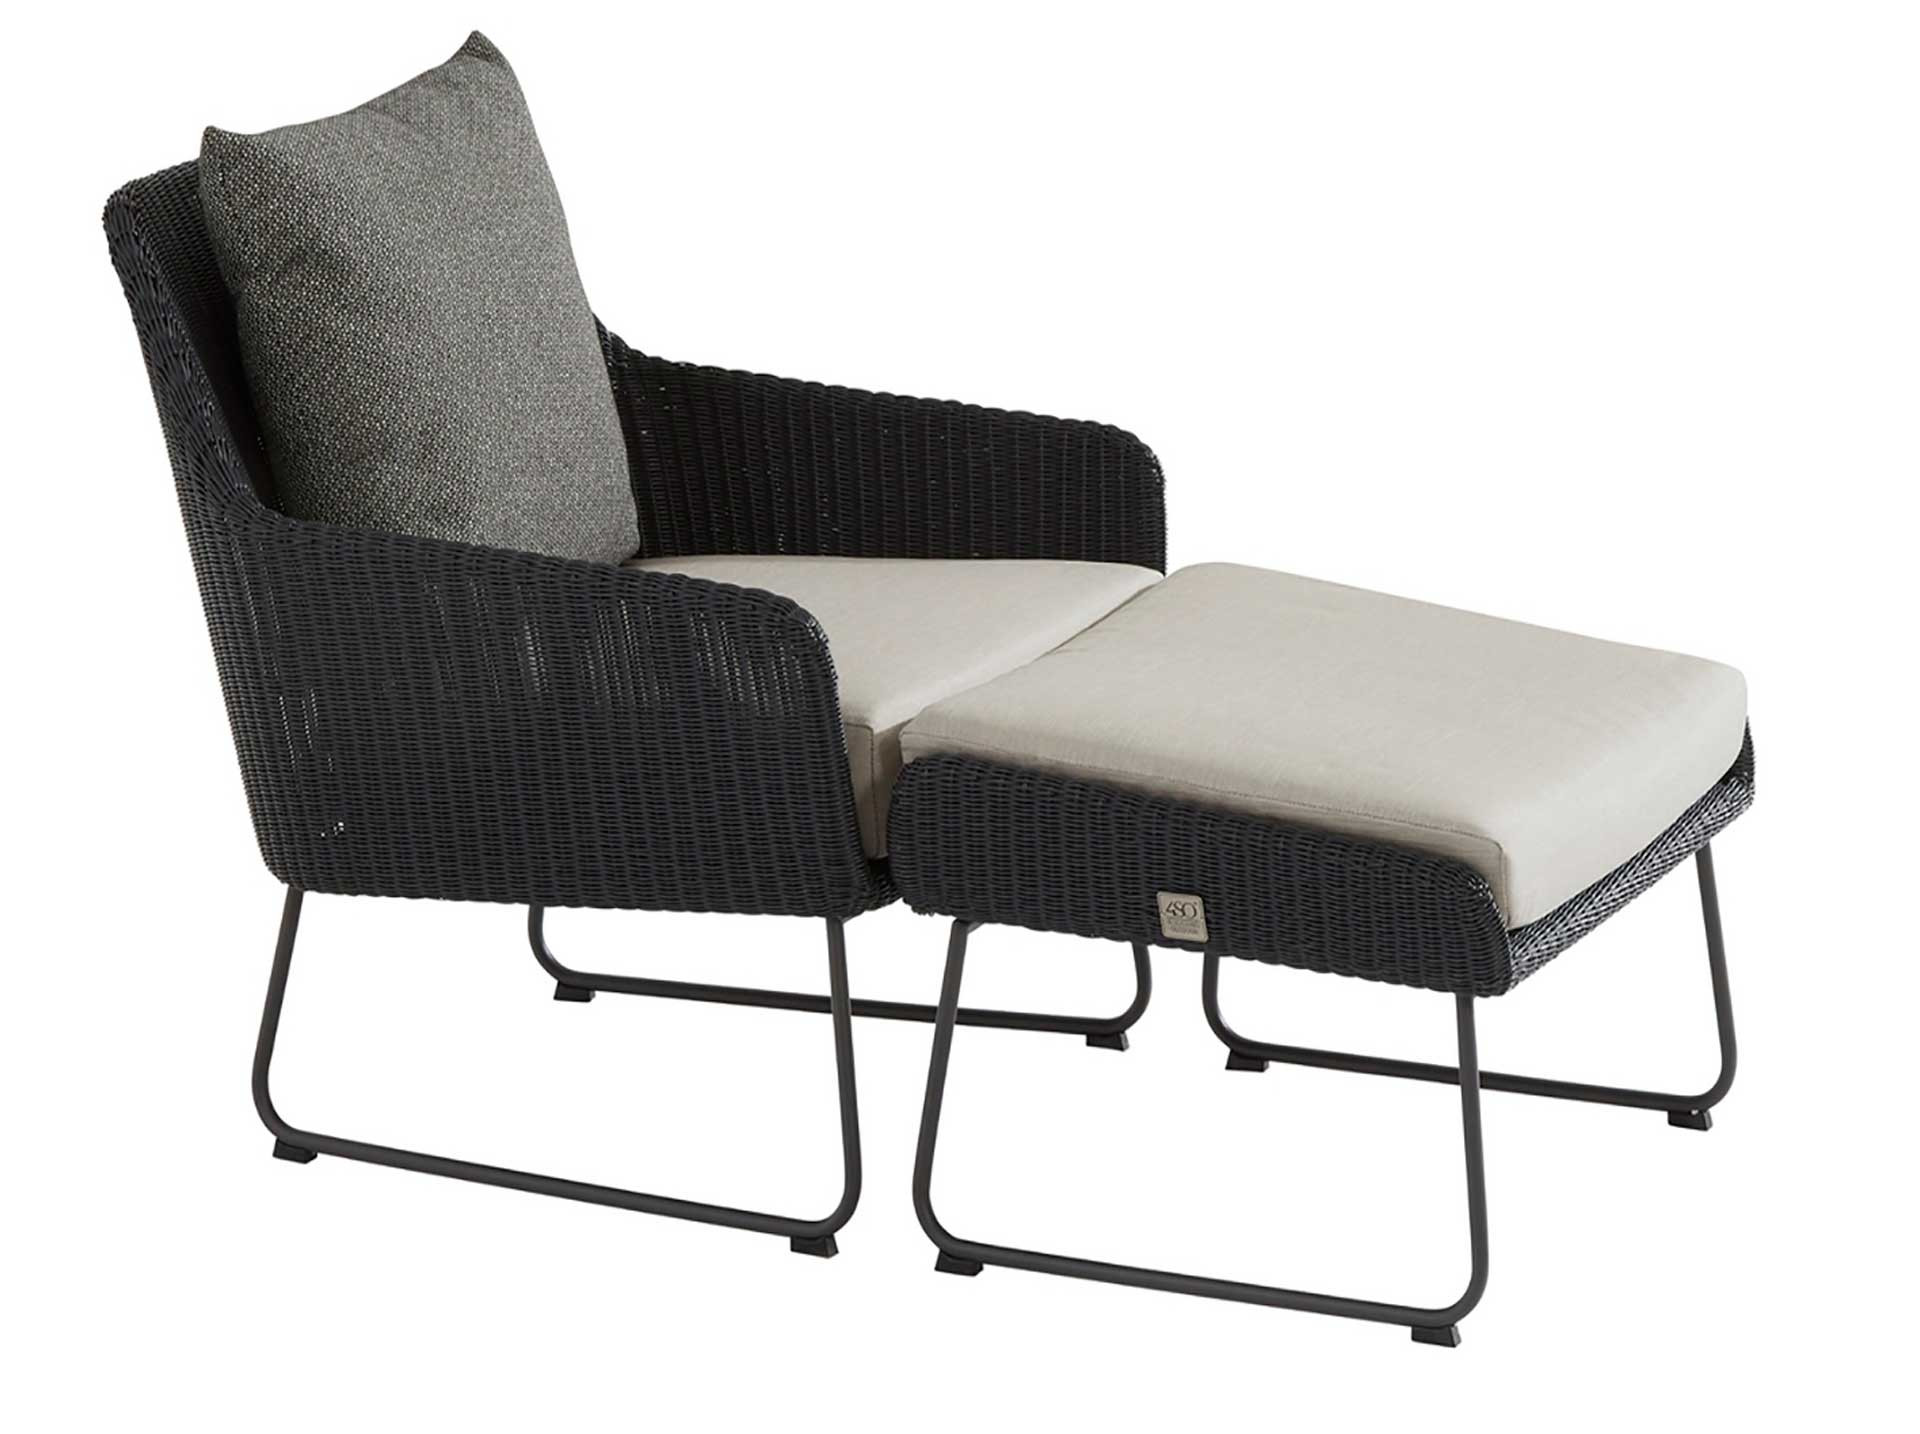 Avila anthracite lounge set